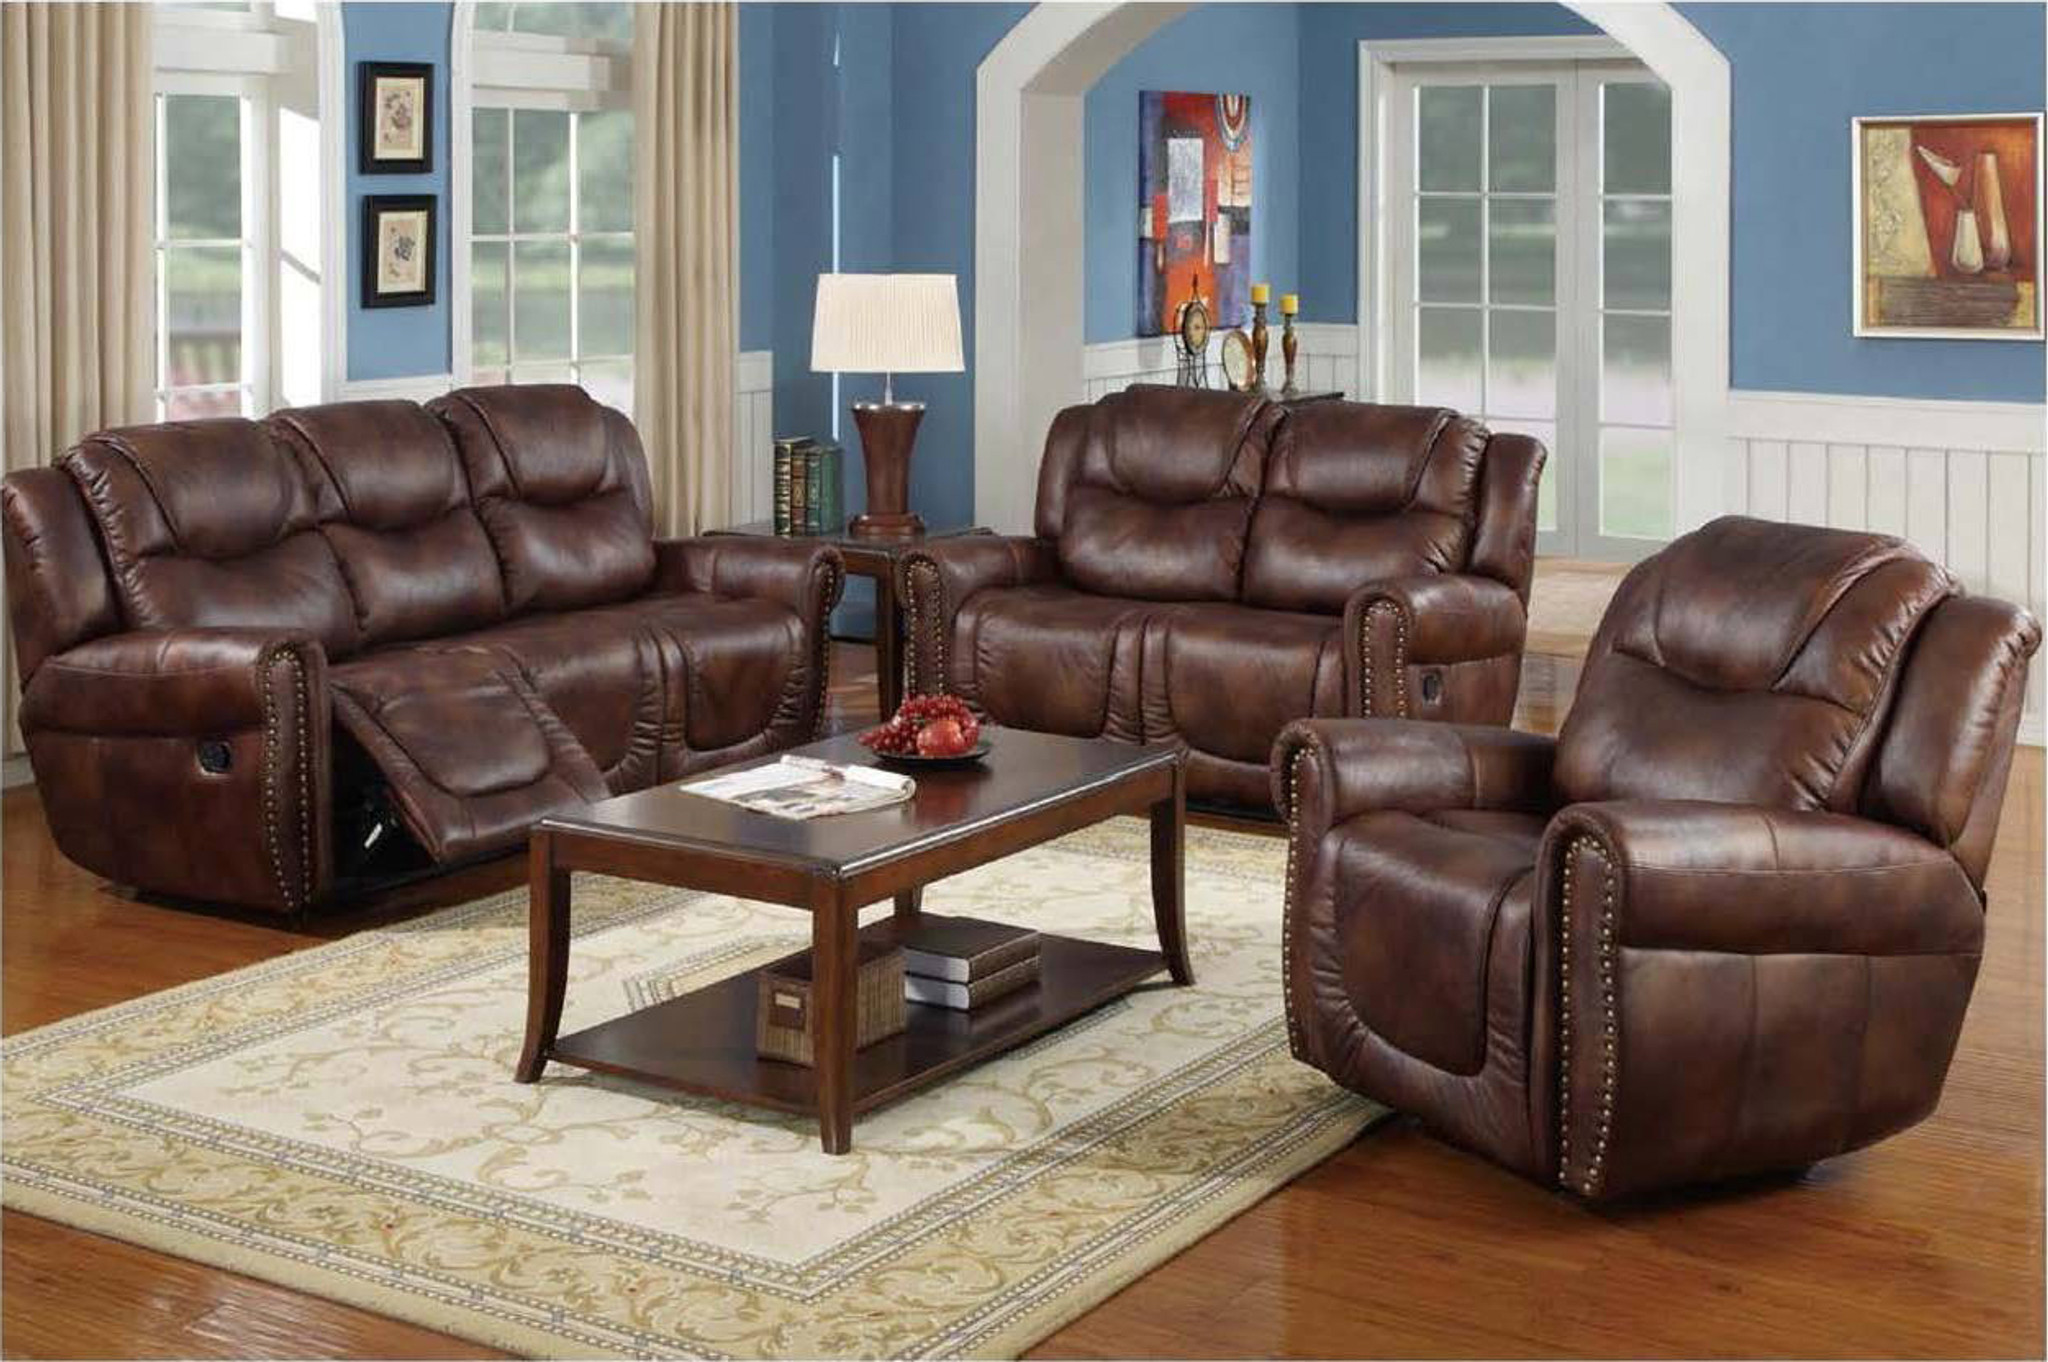 Gs3700 Nicolo Sofa Loveseat With Chair 3 Pc Set Collection By